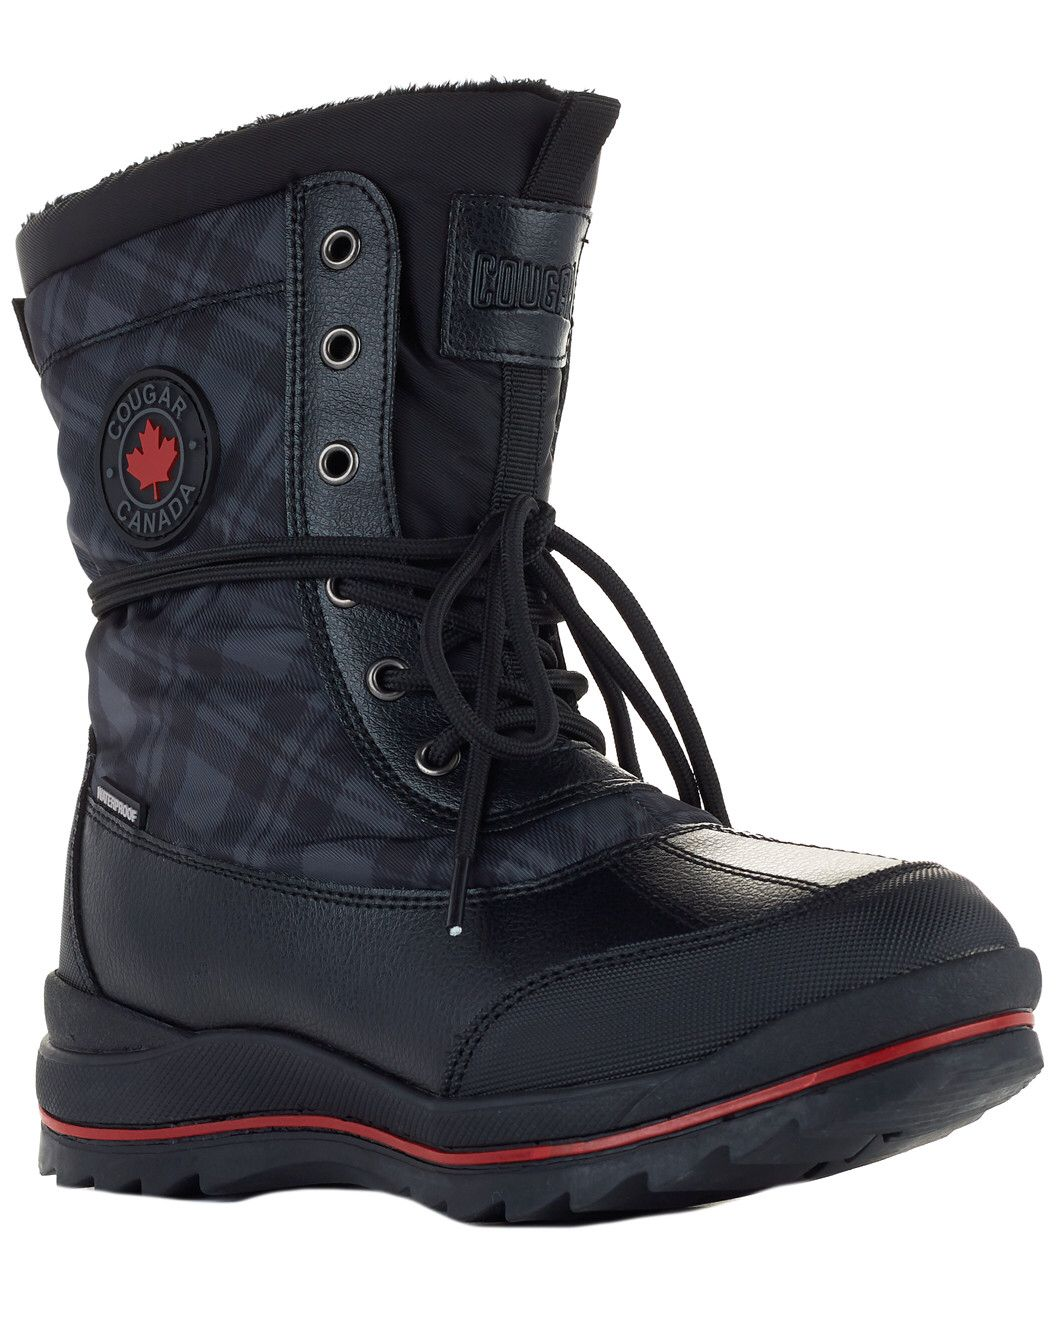 You need to see this Cougar Women's Chambly Waterproof Boot on Rue La La. Get in and shop (quickly!): http://www.ruelala.com/boutique/product/99902/30565332?inv=lshaw316&aid=6191